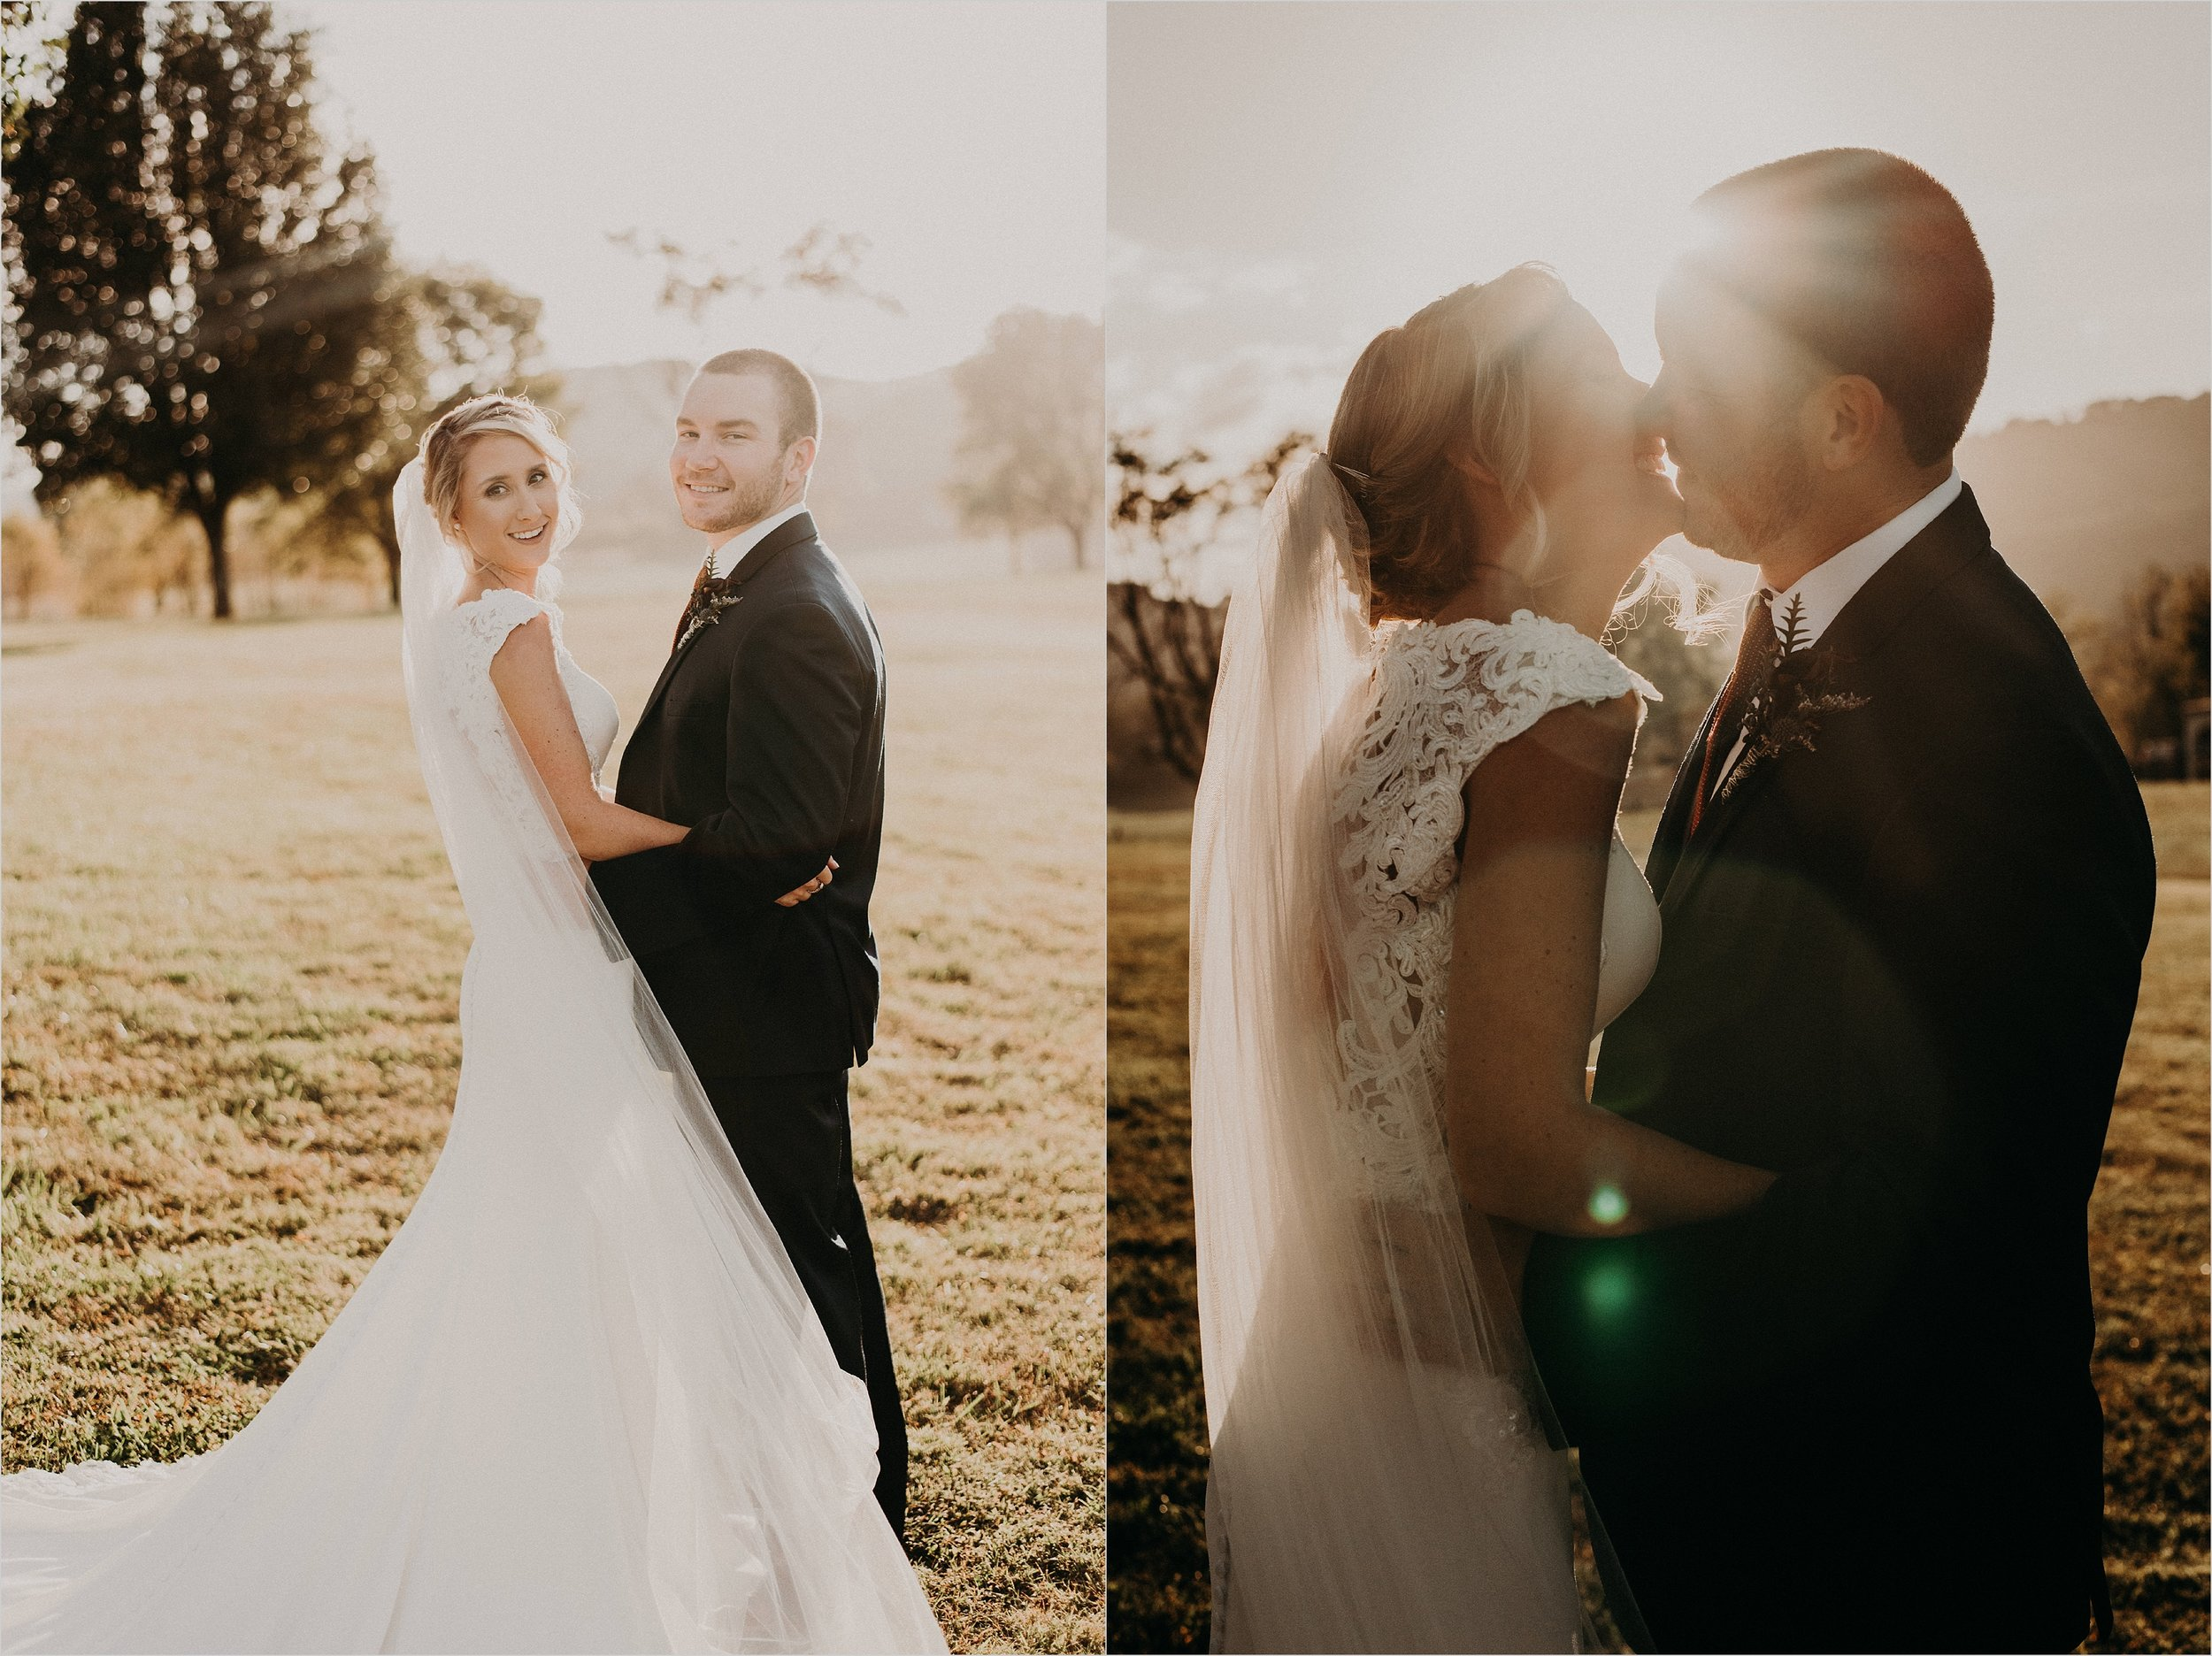 Bride and groom share kiss together at sunset